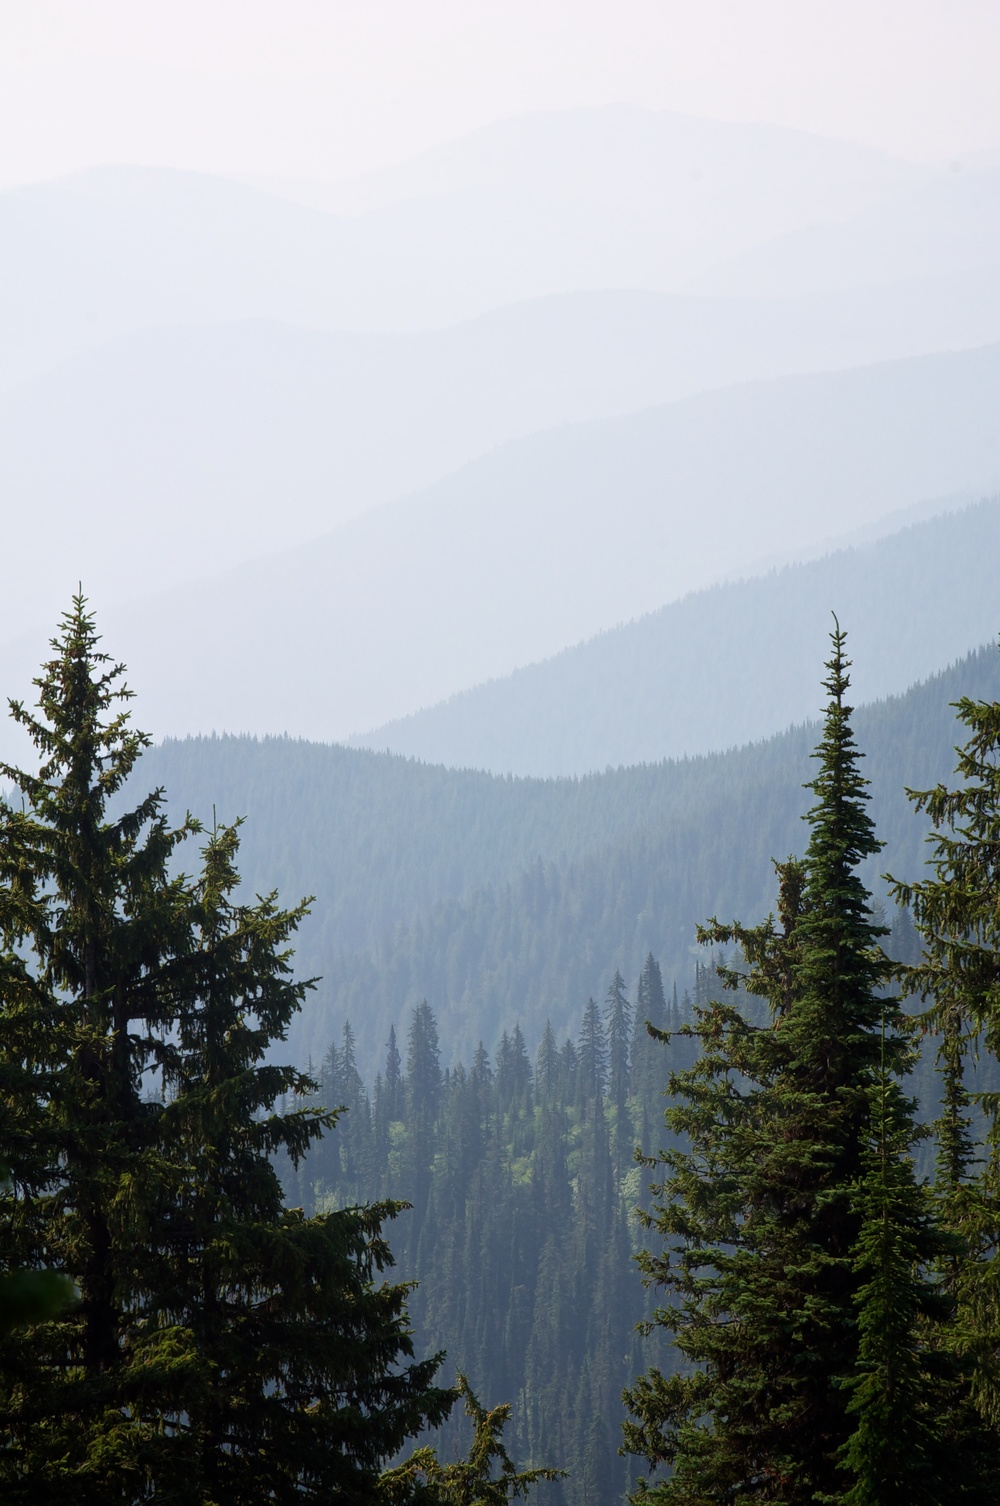 nature, landscape, forest, mountains, pine trees, pacific northwest, salmo-priest, selkirk mountains